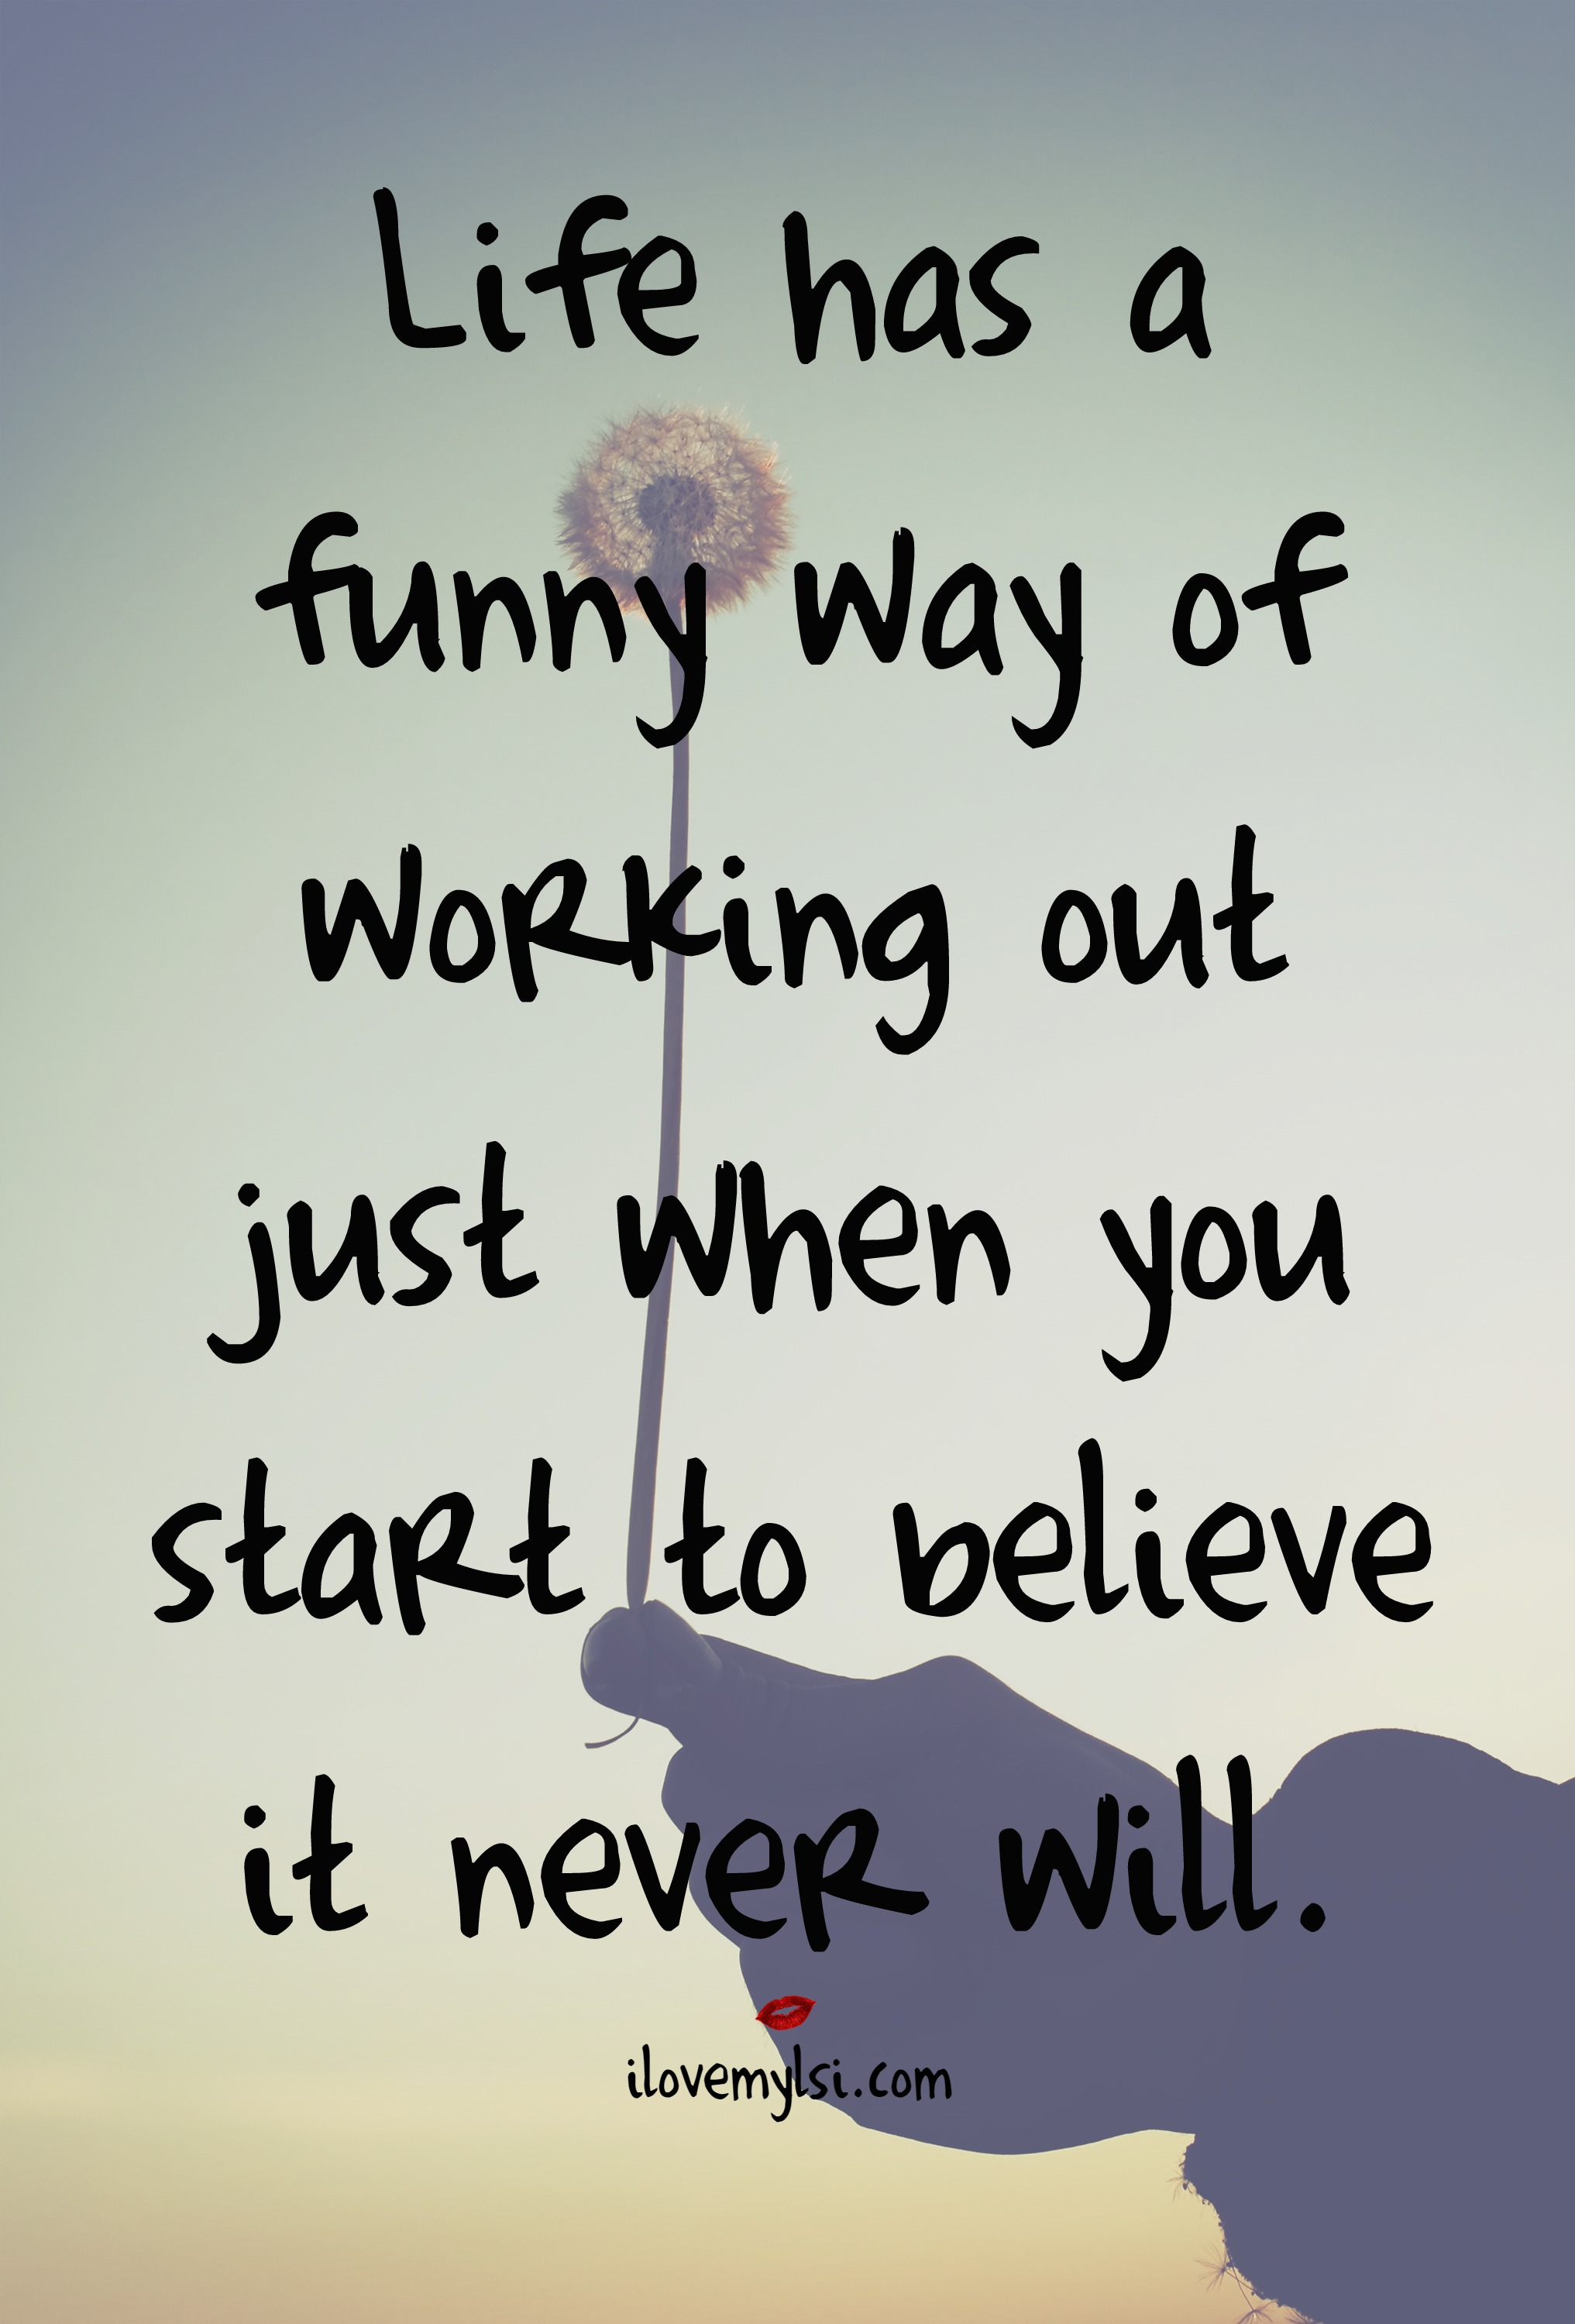 Life has a funny way of working out just when you start to believe it